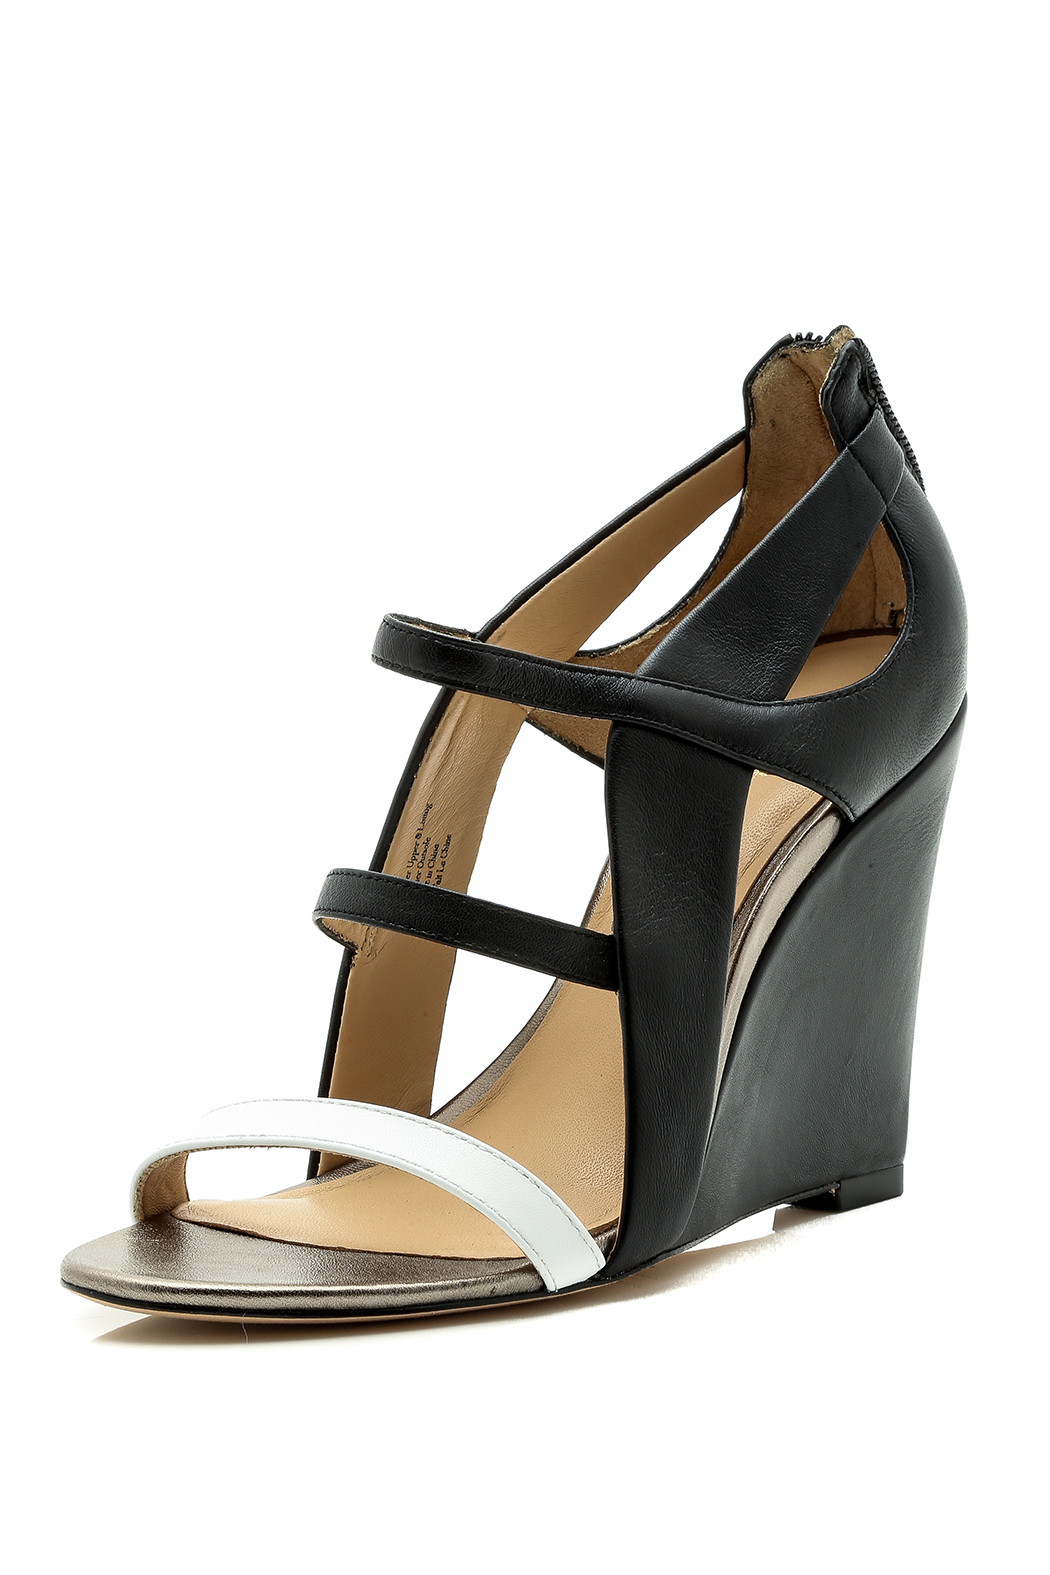 6afa7d7202d Eight Fifteen Tilt Ankle Strap Wedge from New York City by WiNK ...